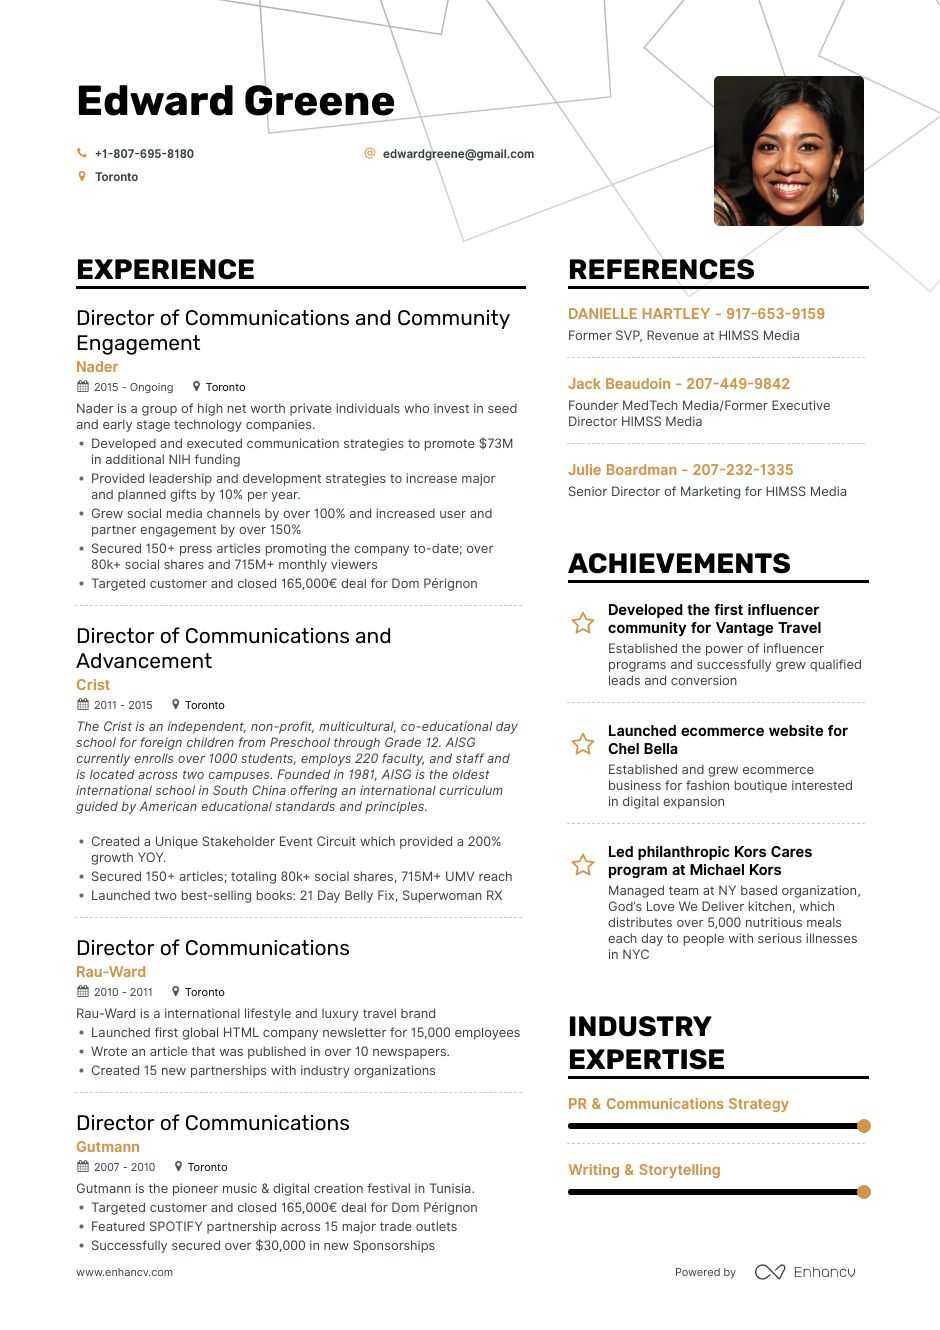 director of communications resume example